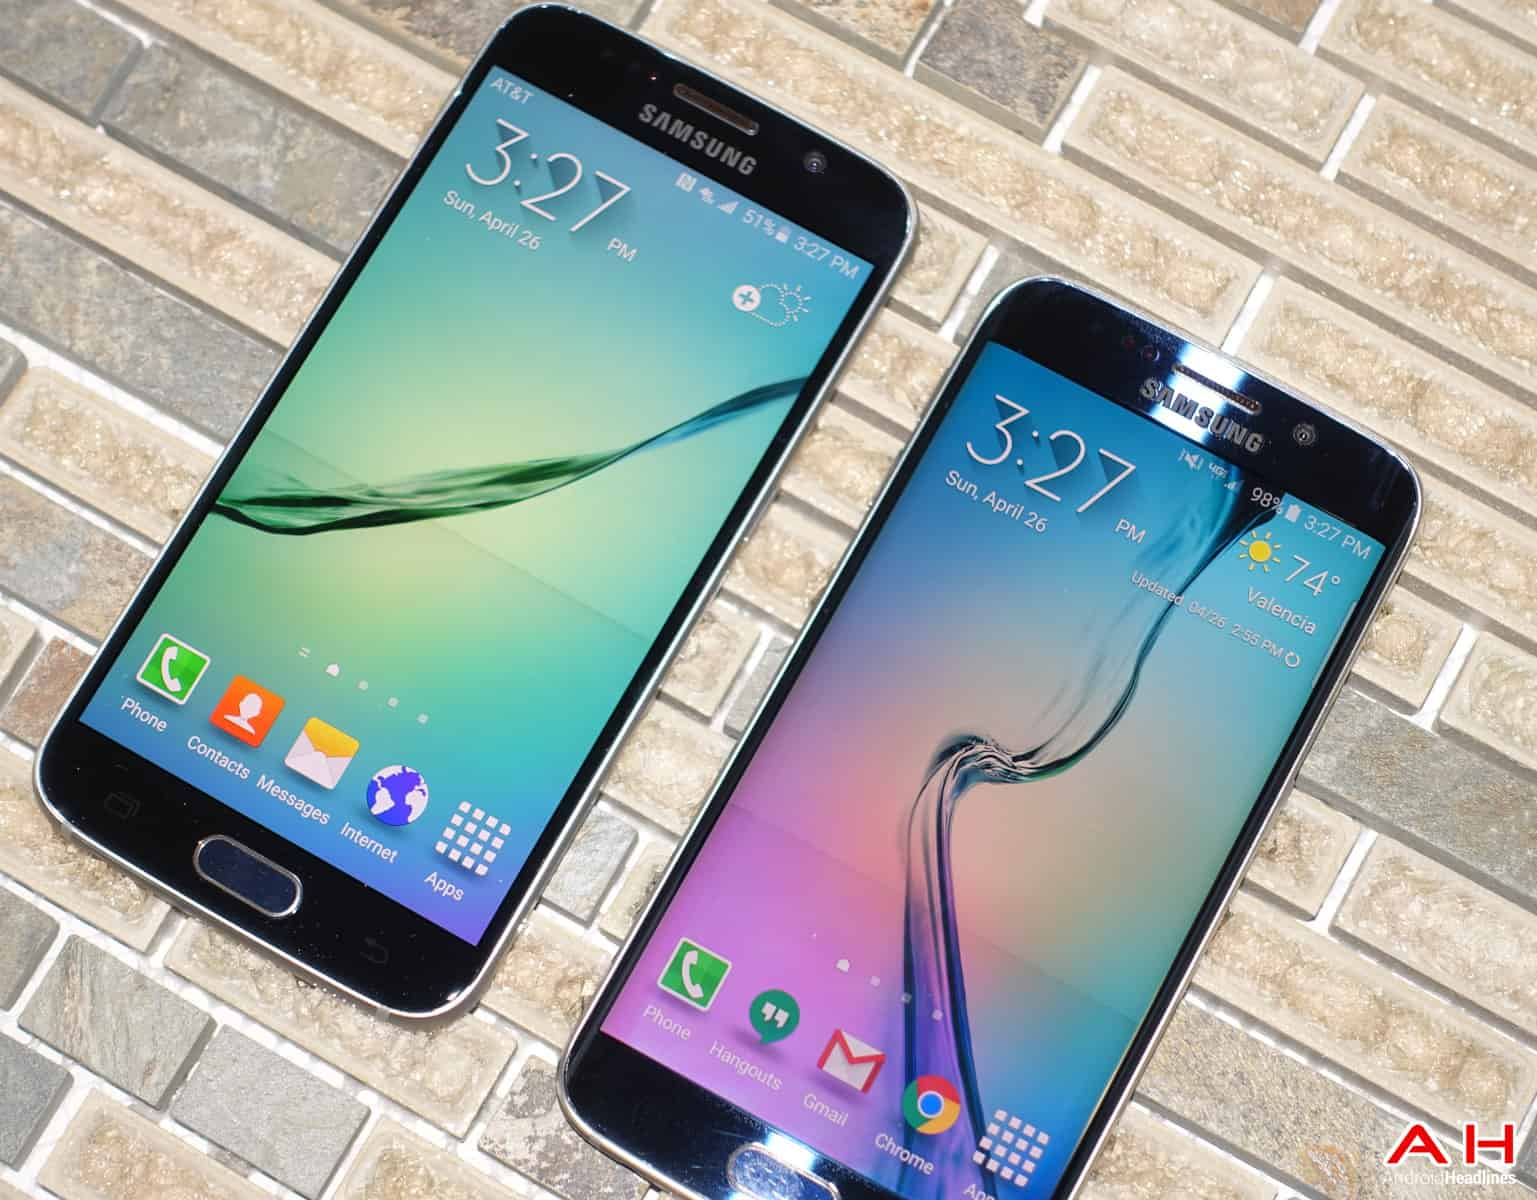 AH Samsung Galaxy S6 & Edge May 3rd - Chris-5